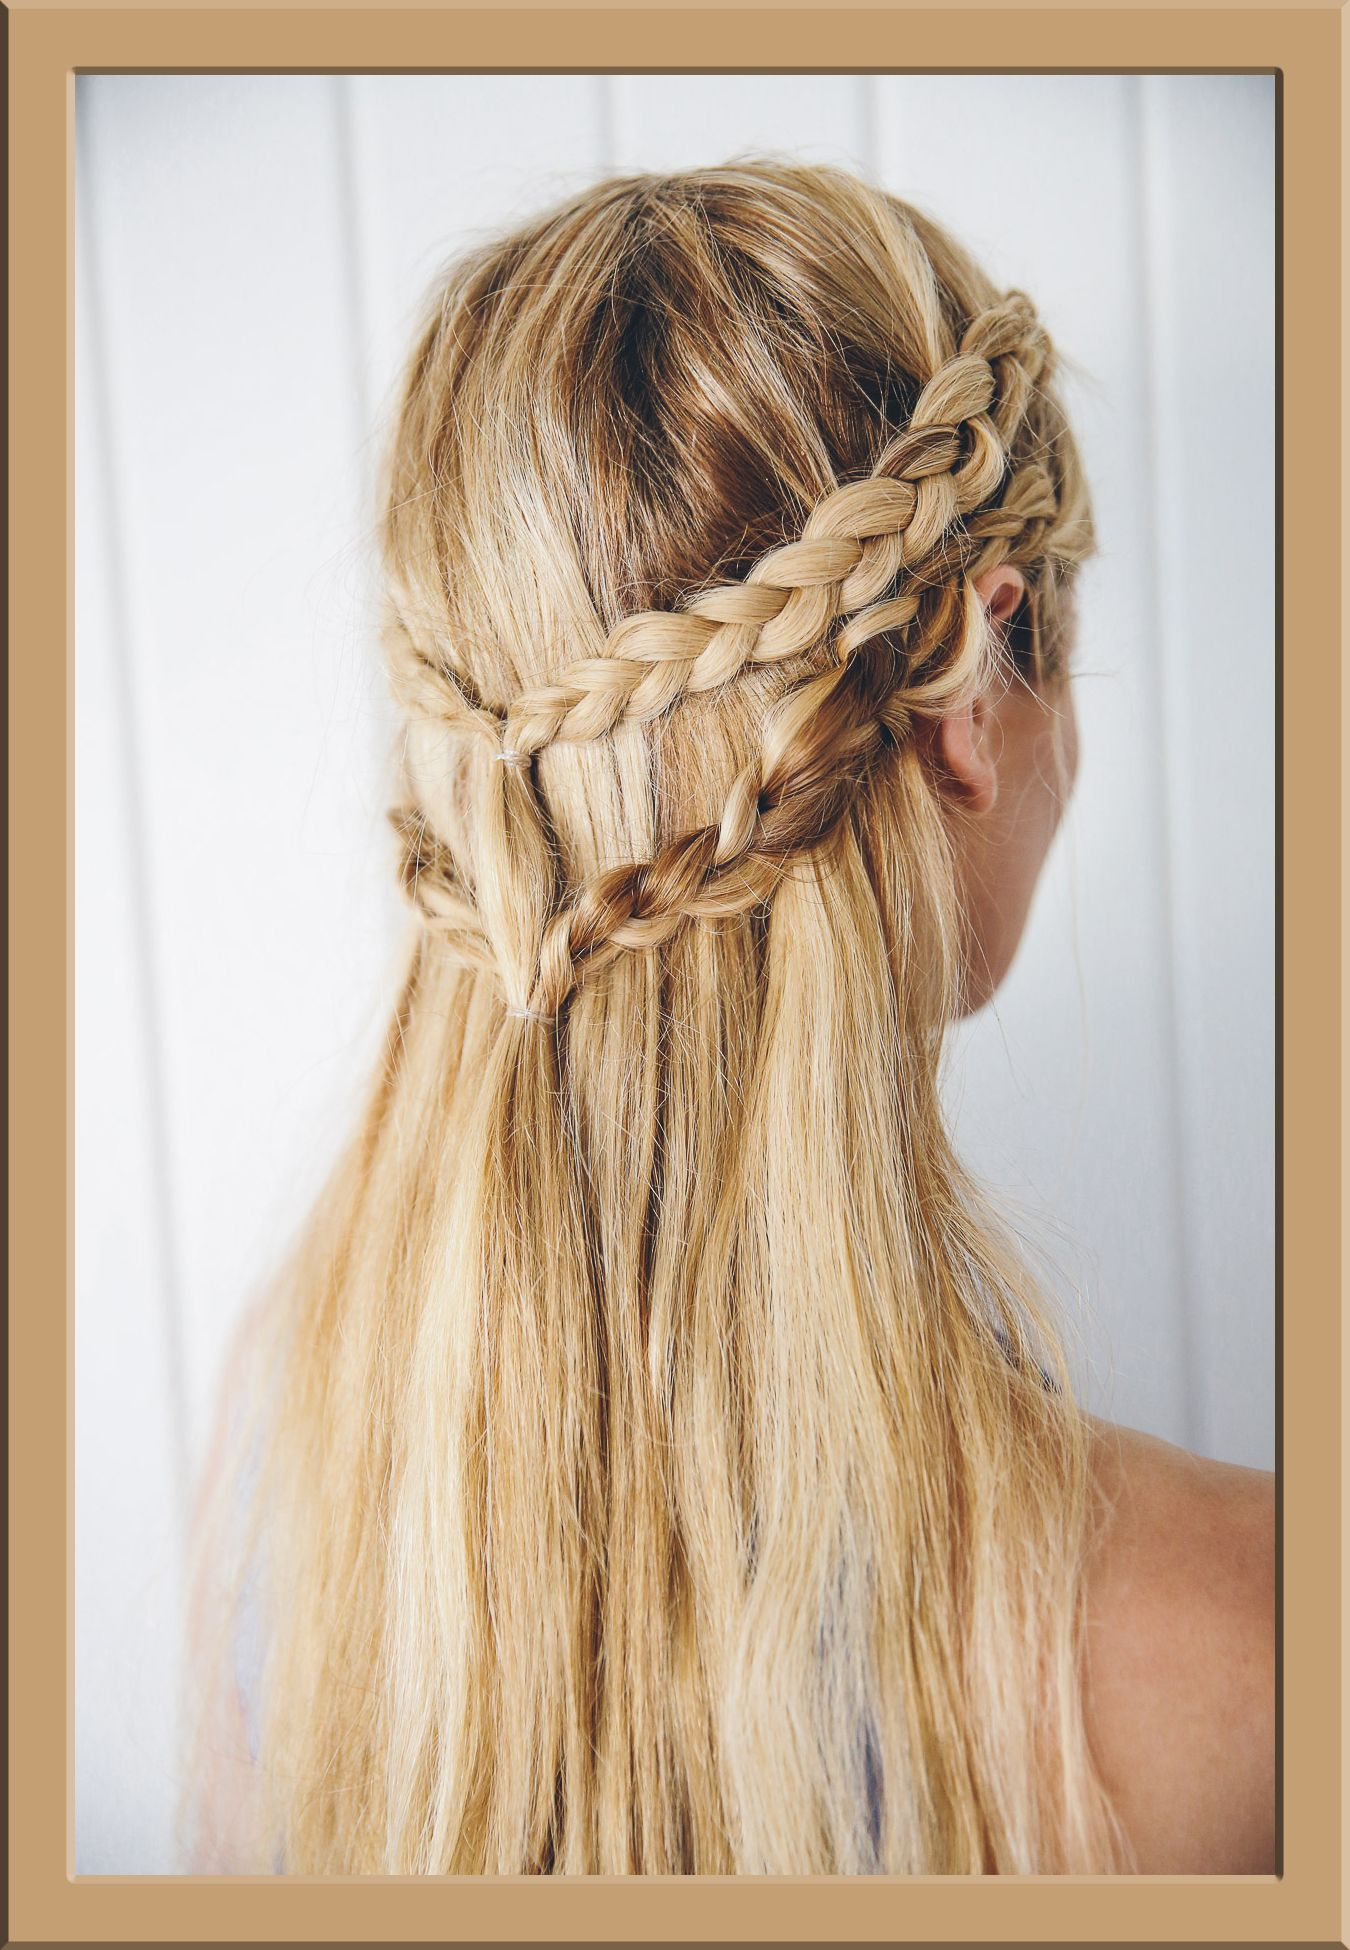 Hair Styles Explained – Oct 2020